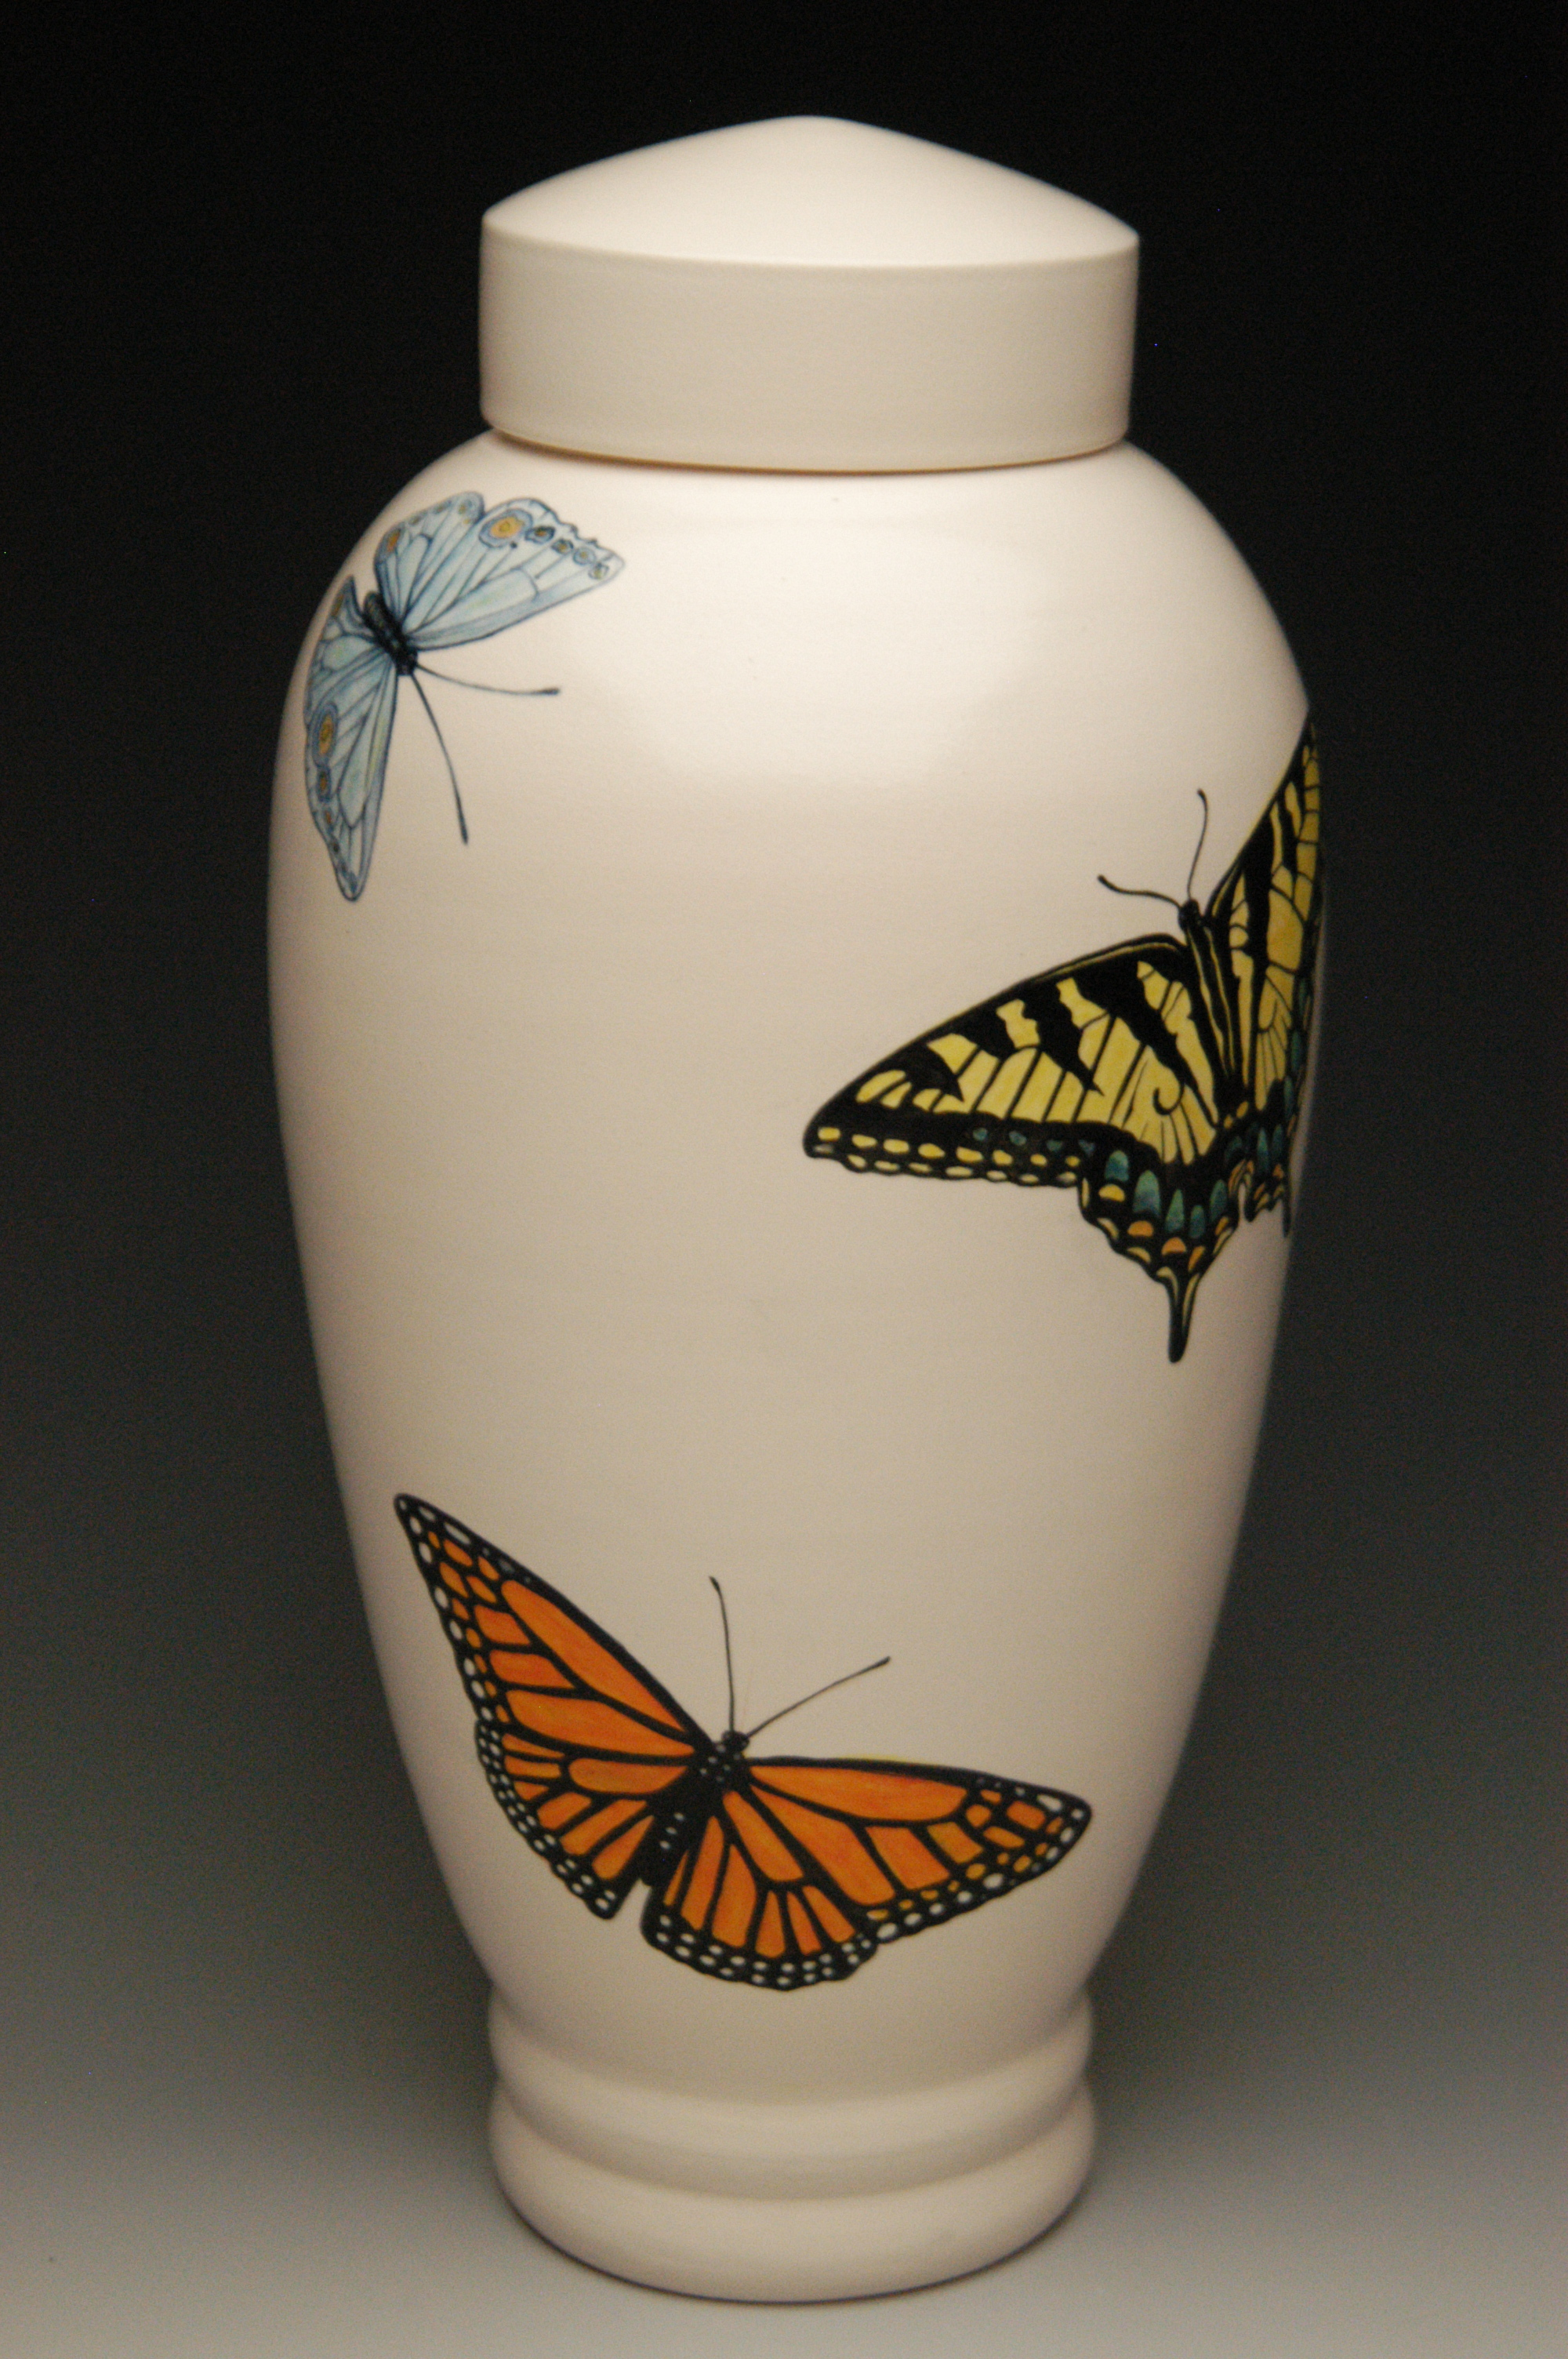 Hand painted butterflyceramic cremation urn